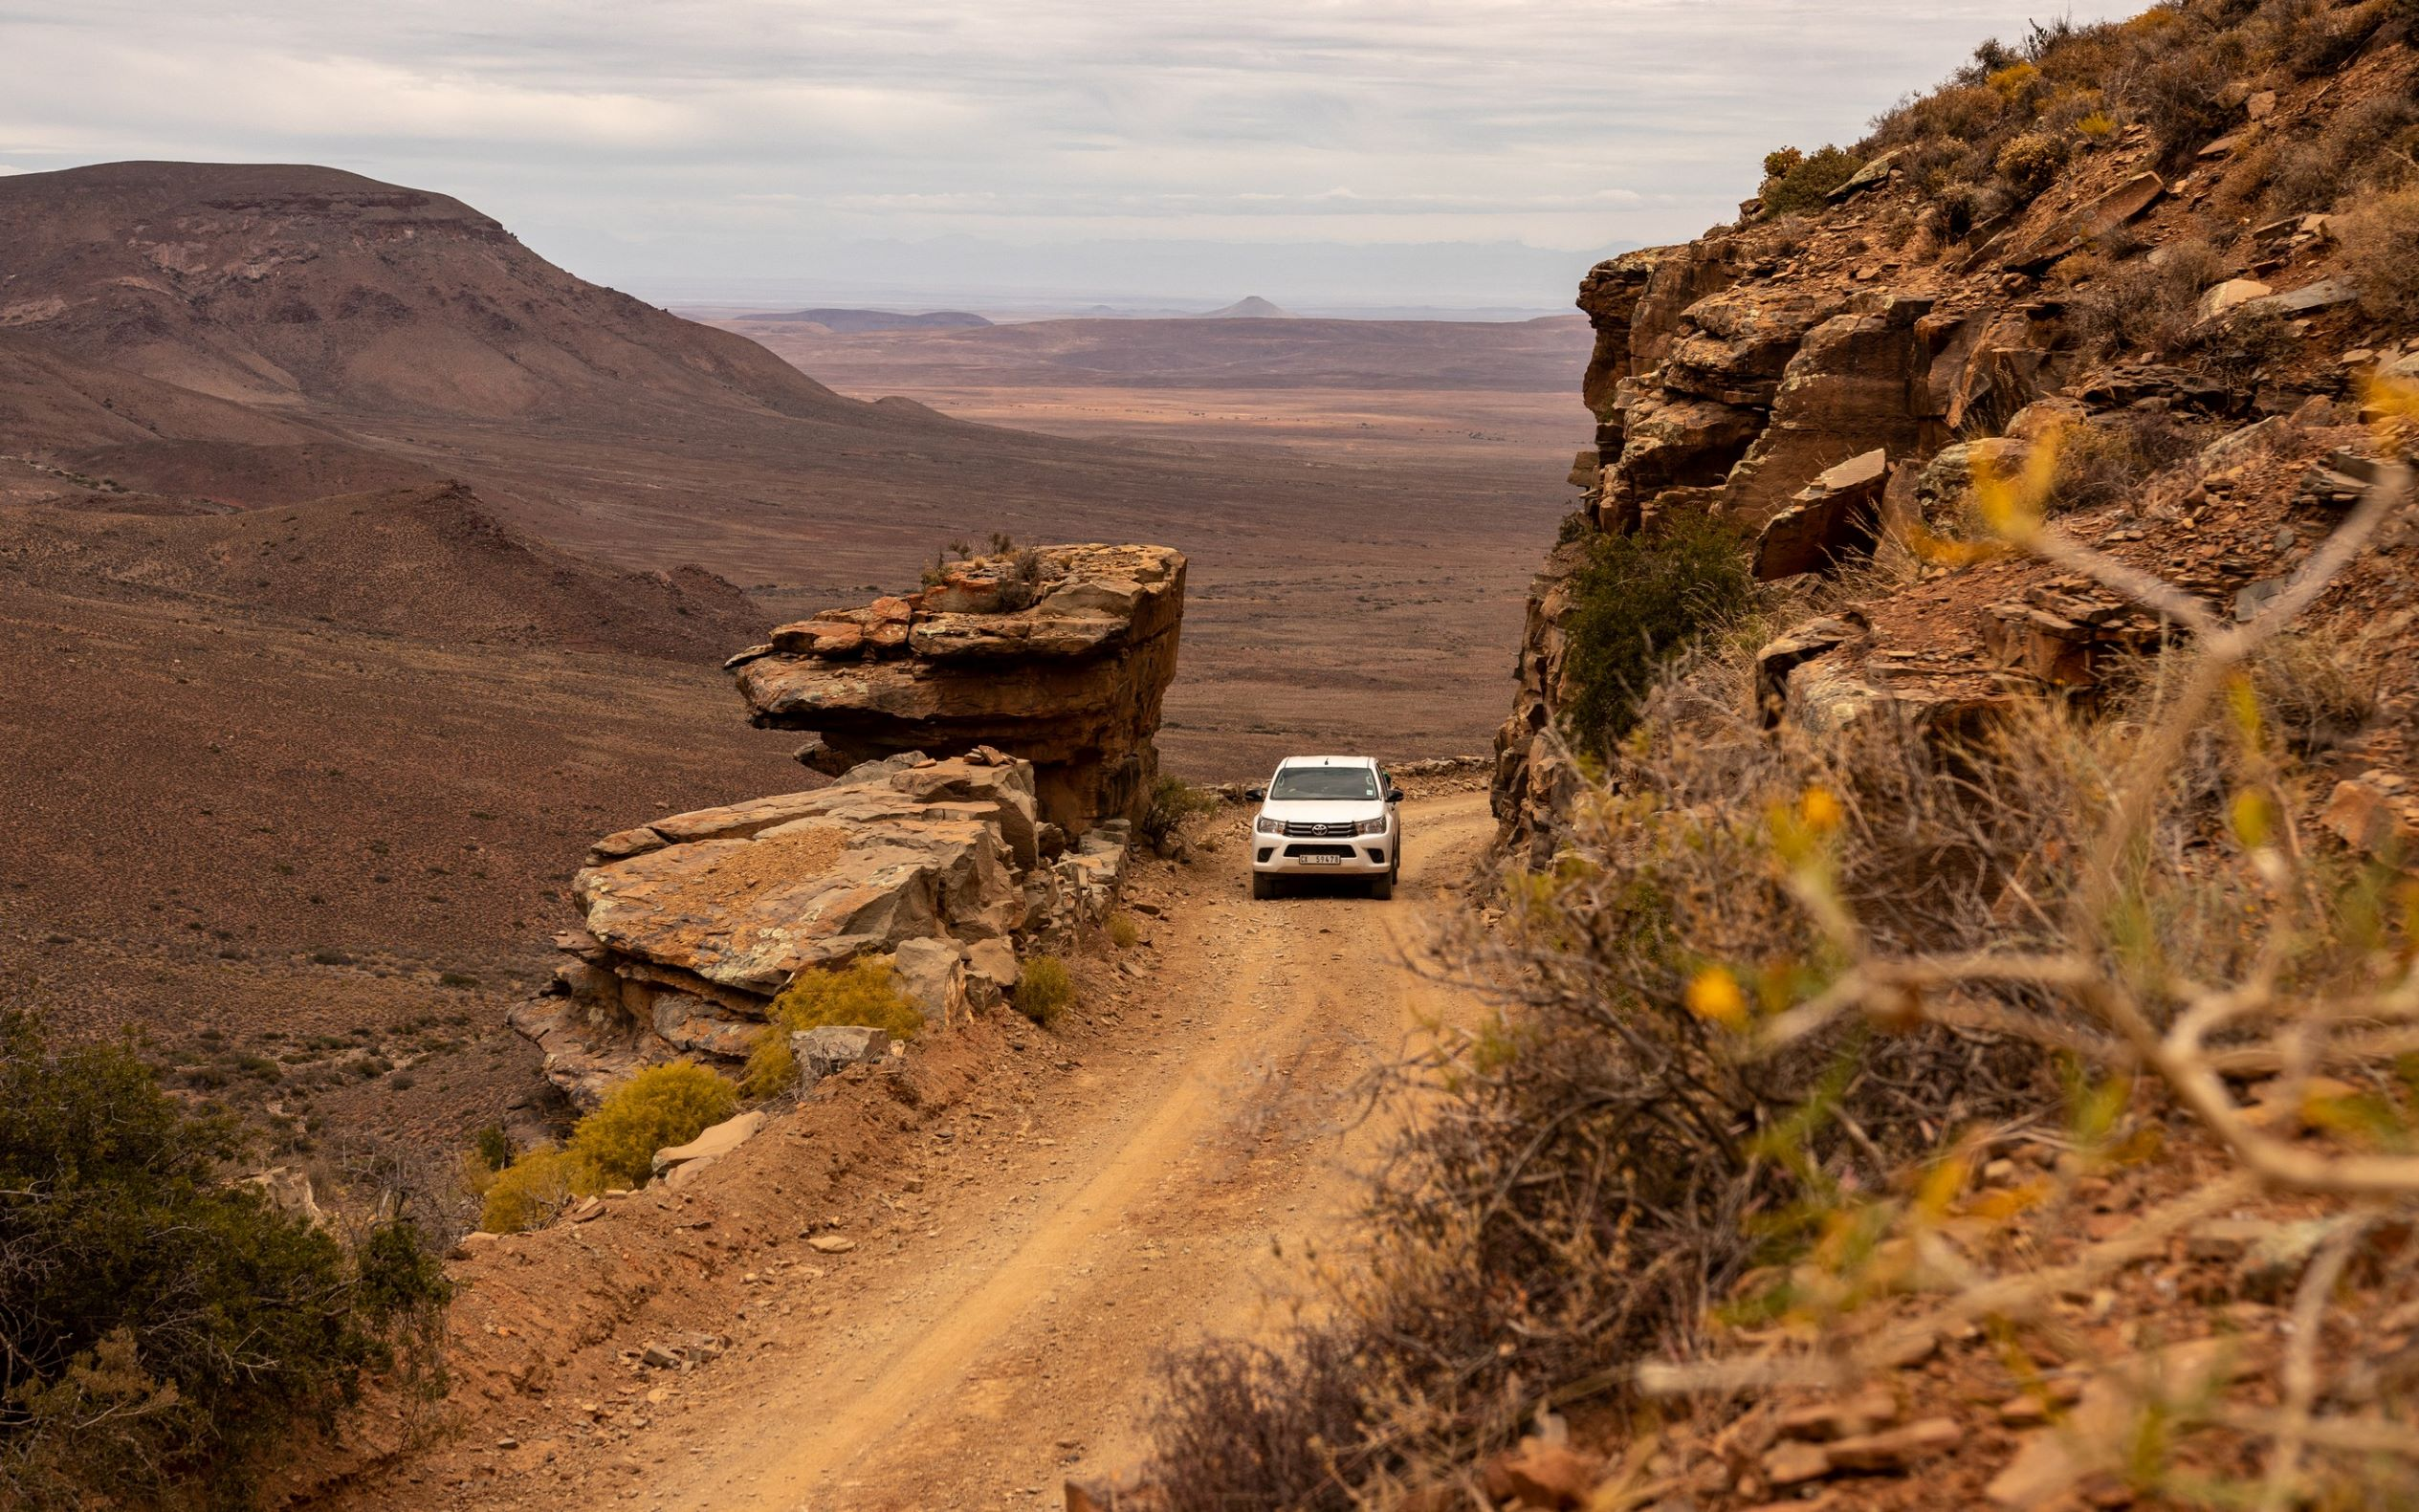 CEDERBERG TO TANKWA: PHOTOGRAPHIC TOUR